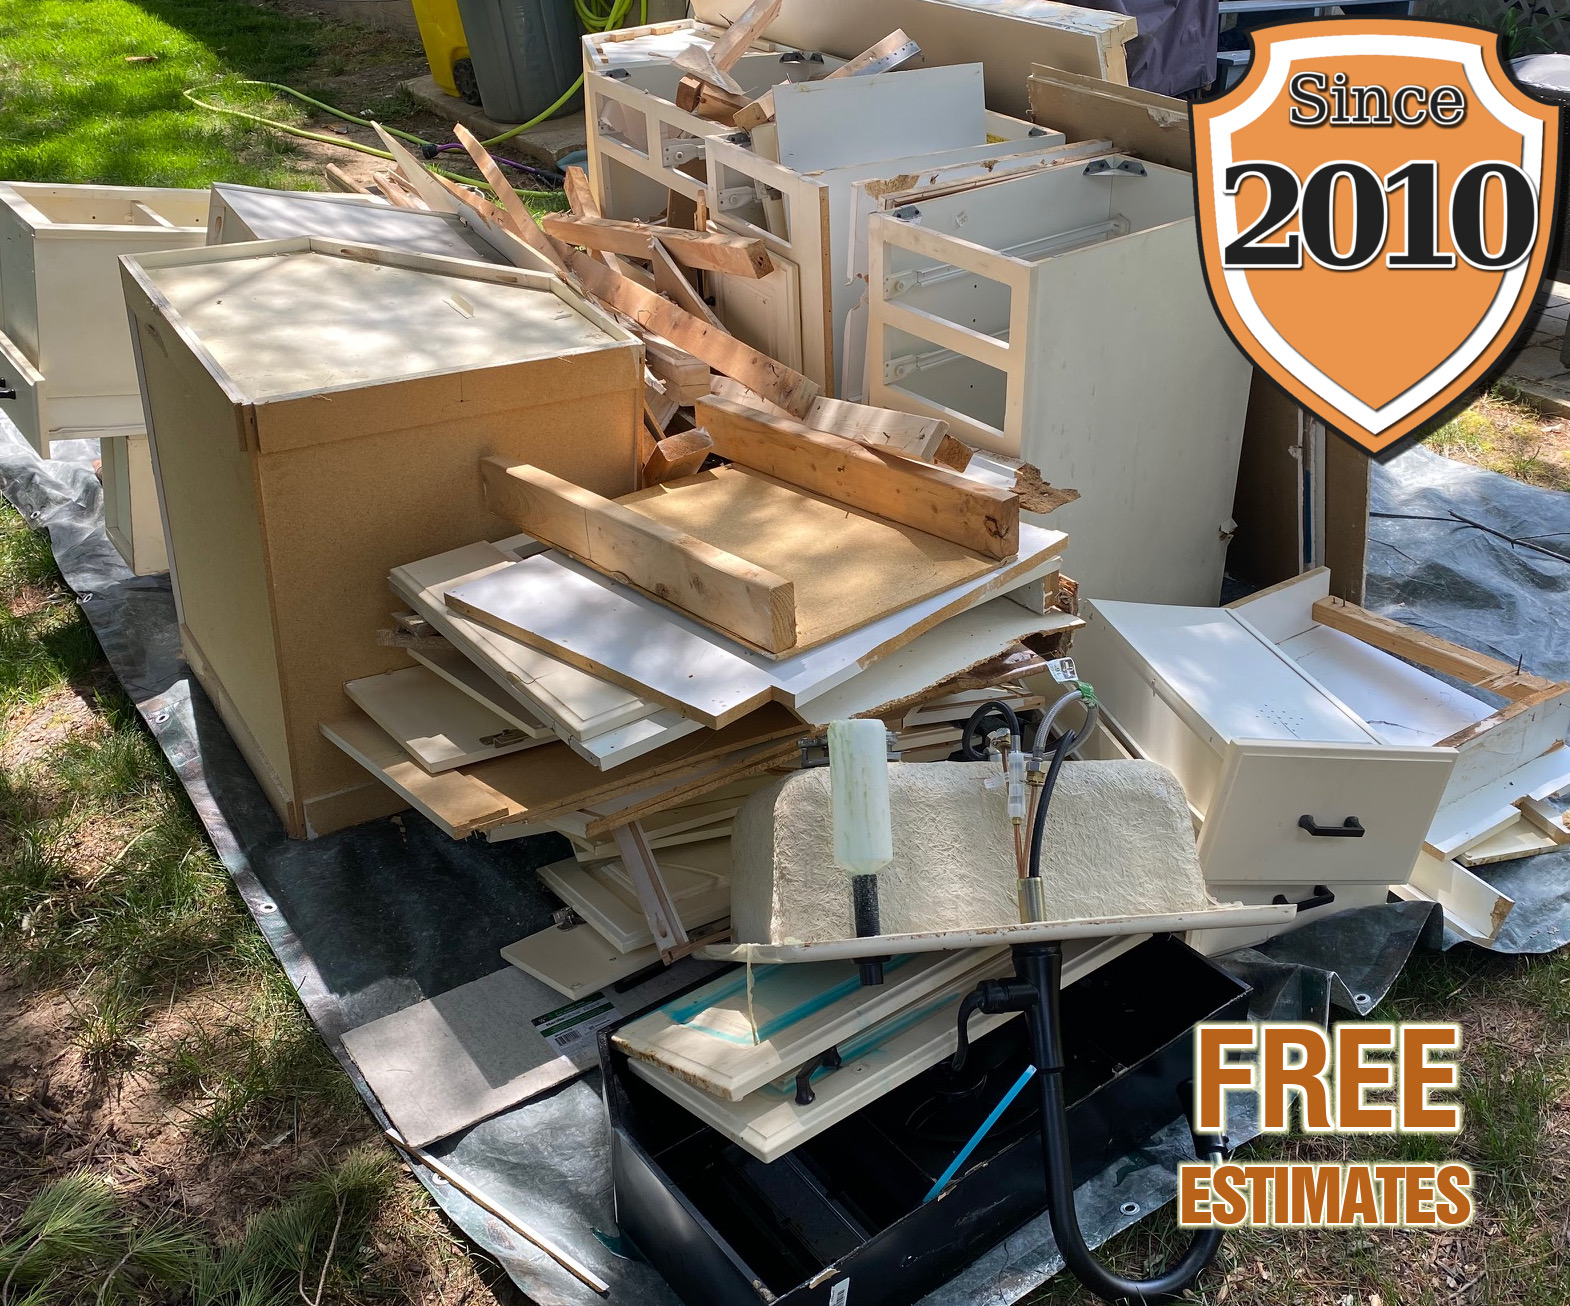 Trash Hauling Junk Removal in Odenton 21113